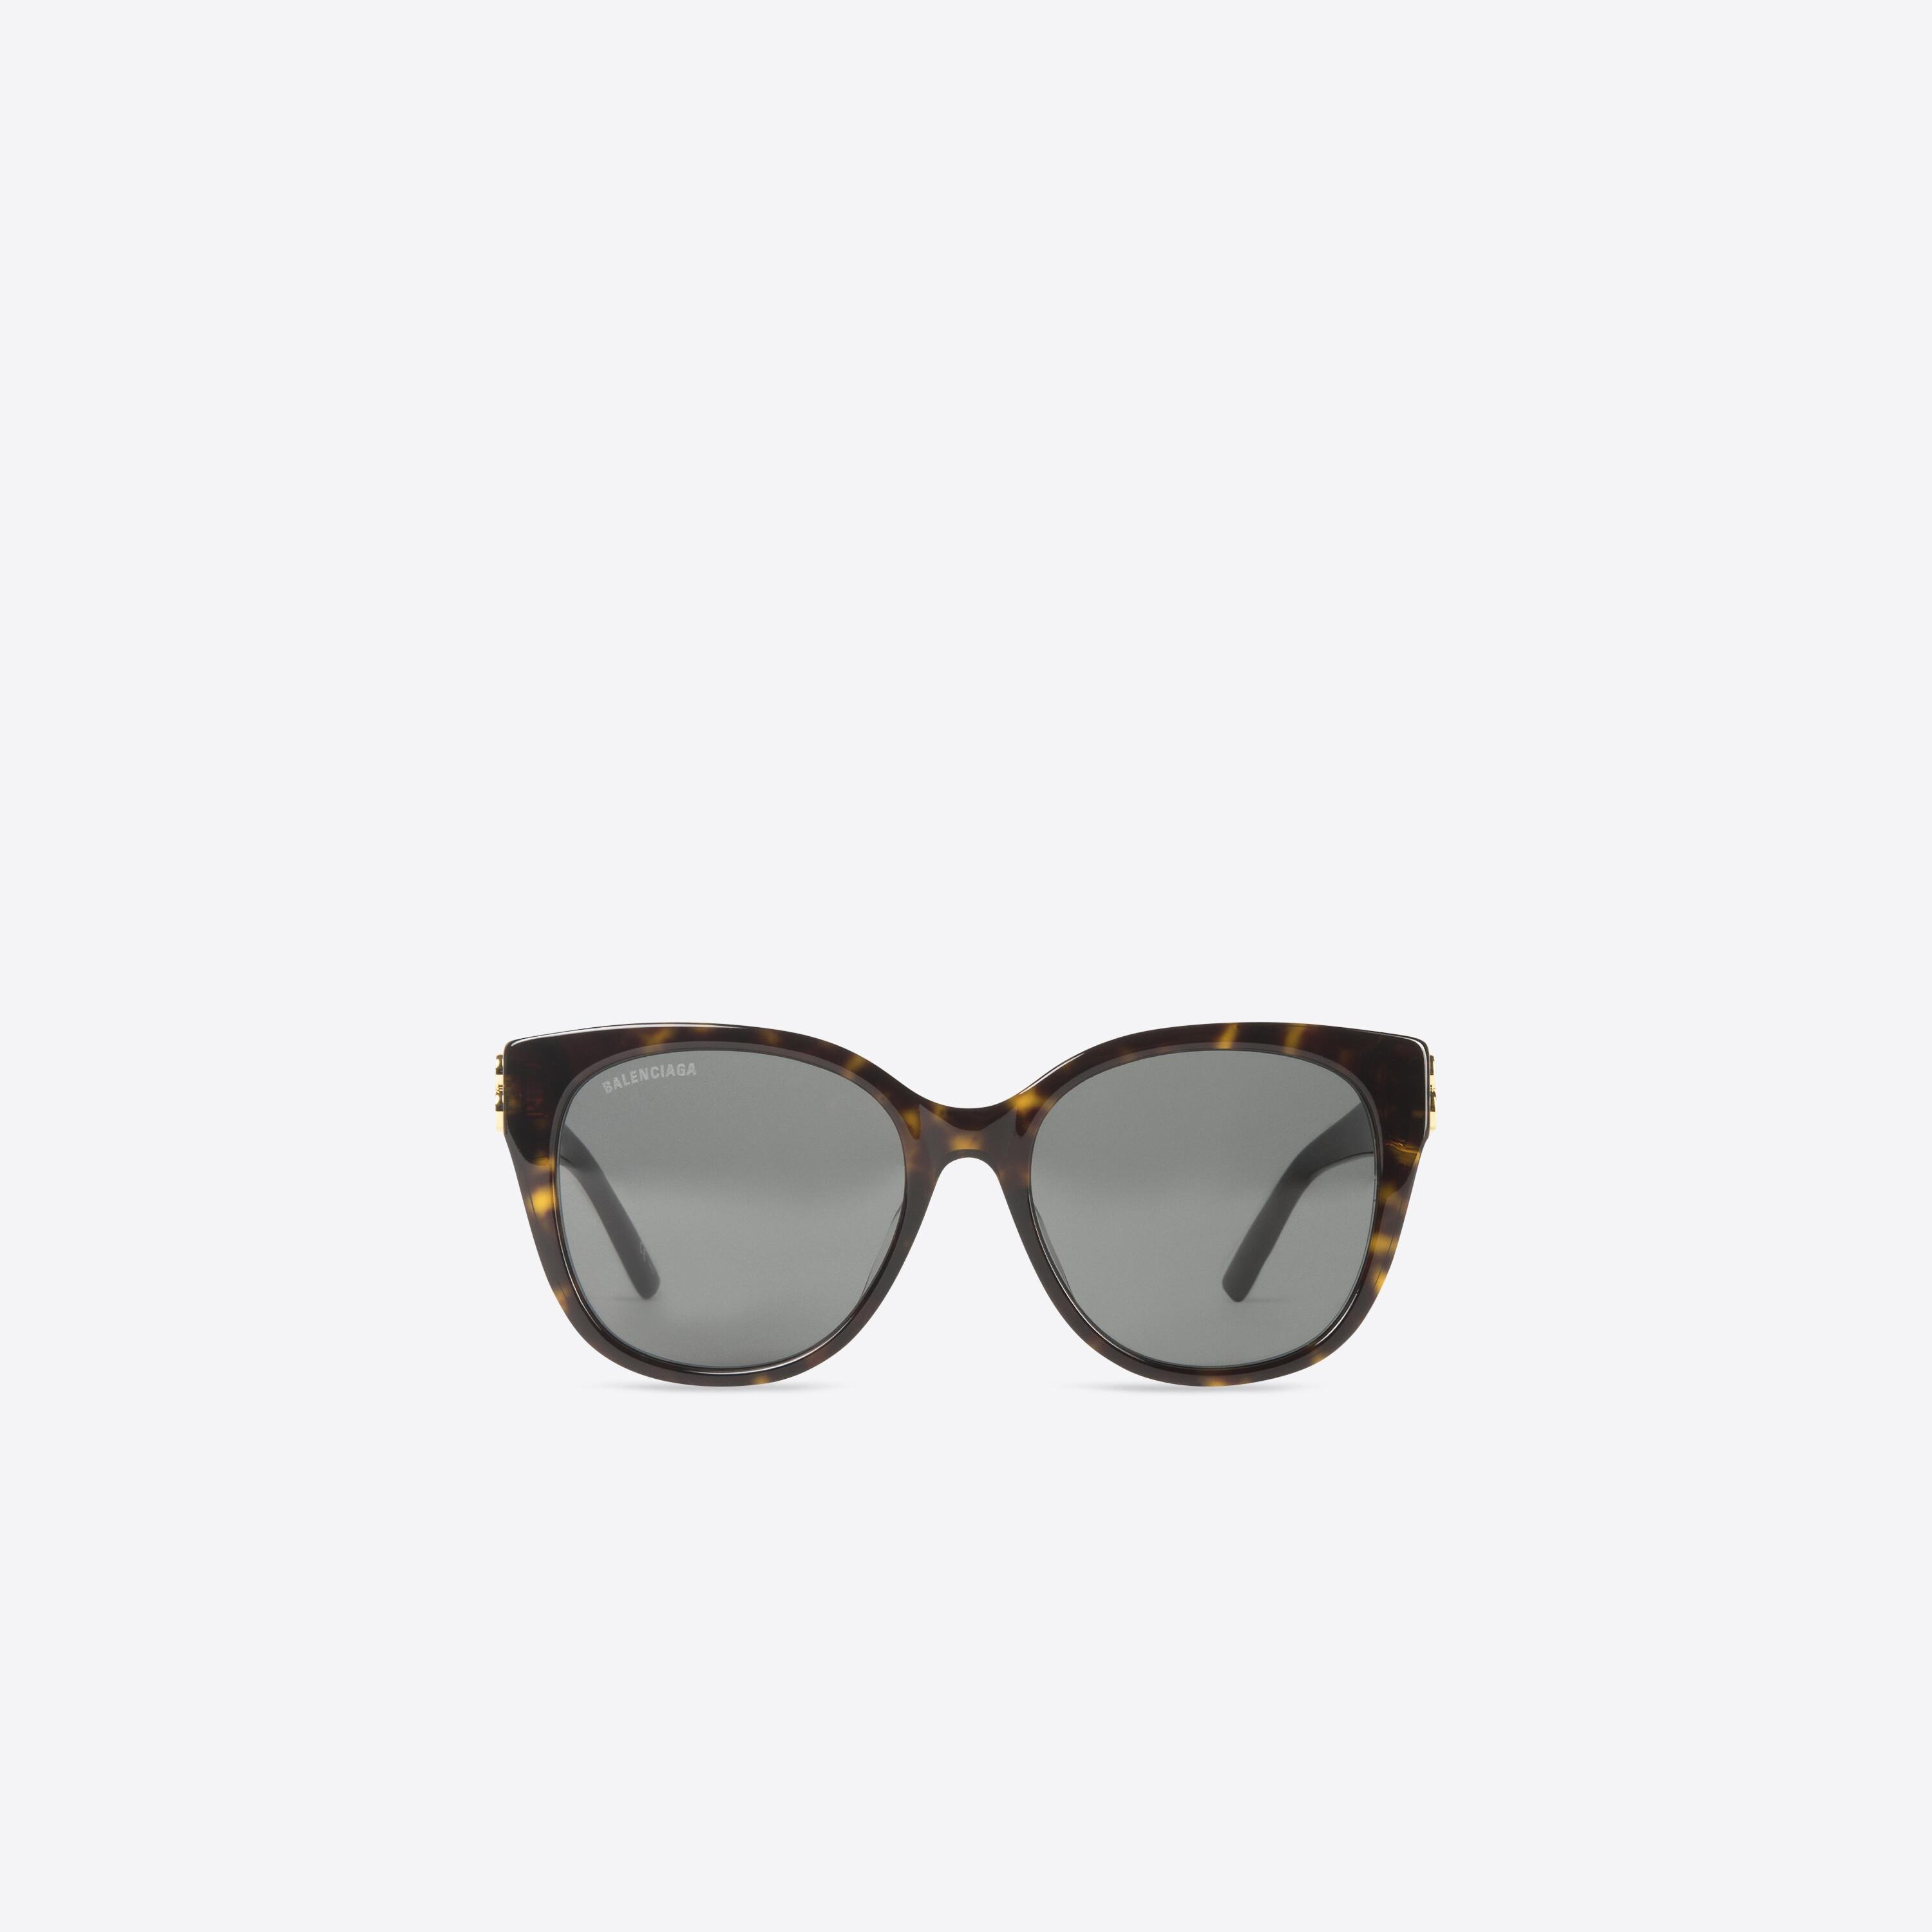 Adjusted Fit Dynasty Cat Sunglasses